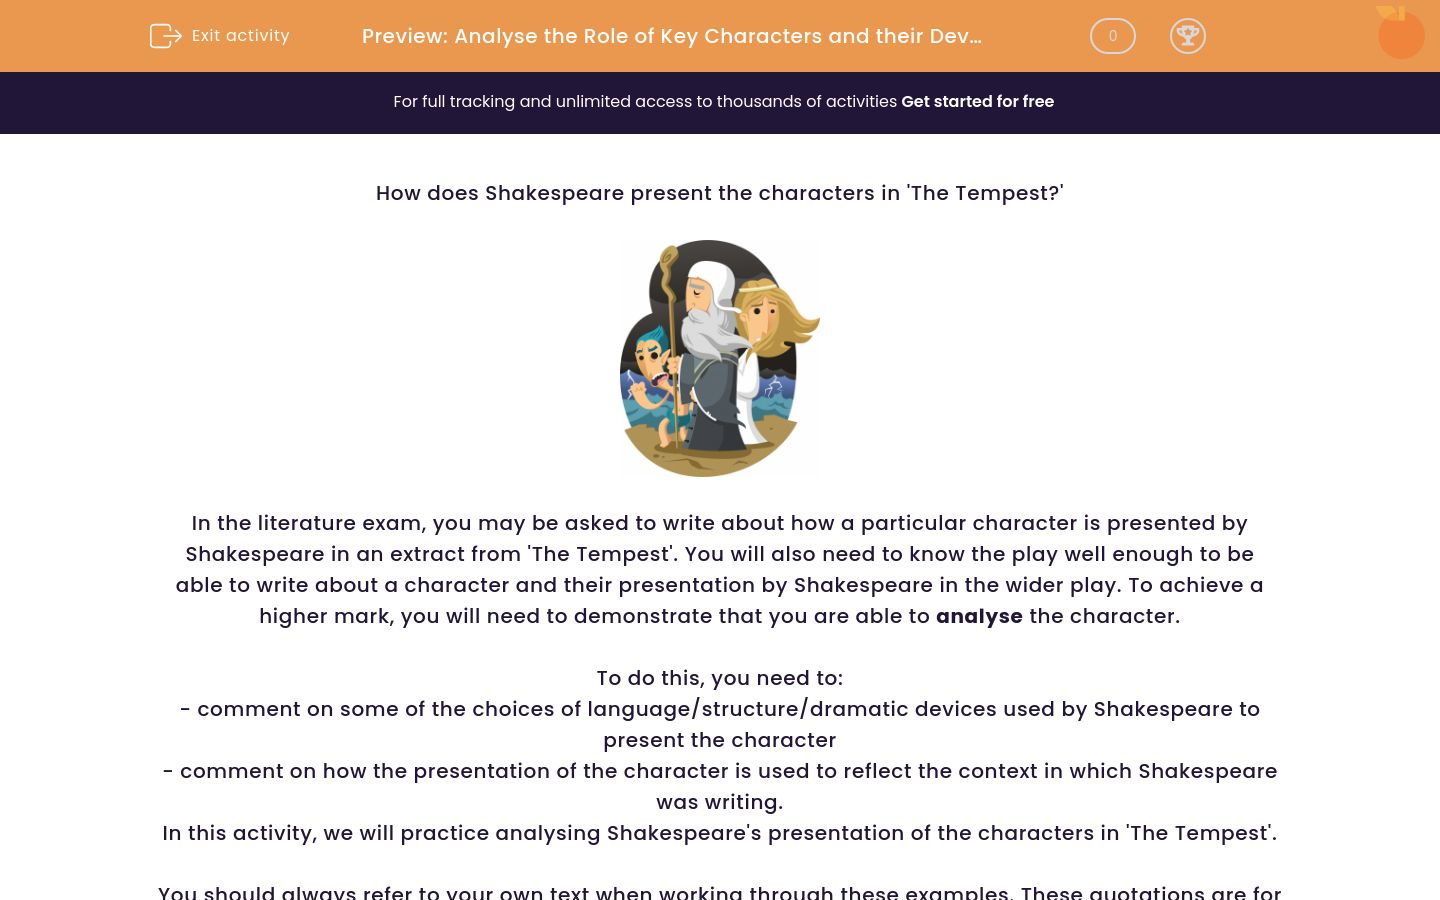 'Analyse the Role of Key Characters and their Development in 'The Tempest'' worksheet